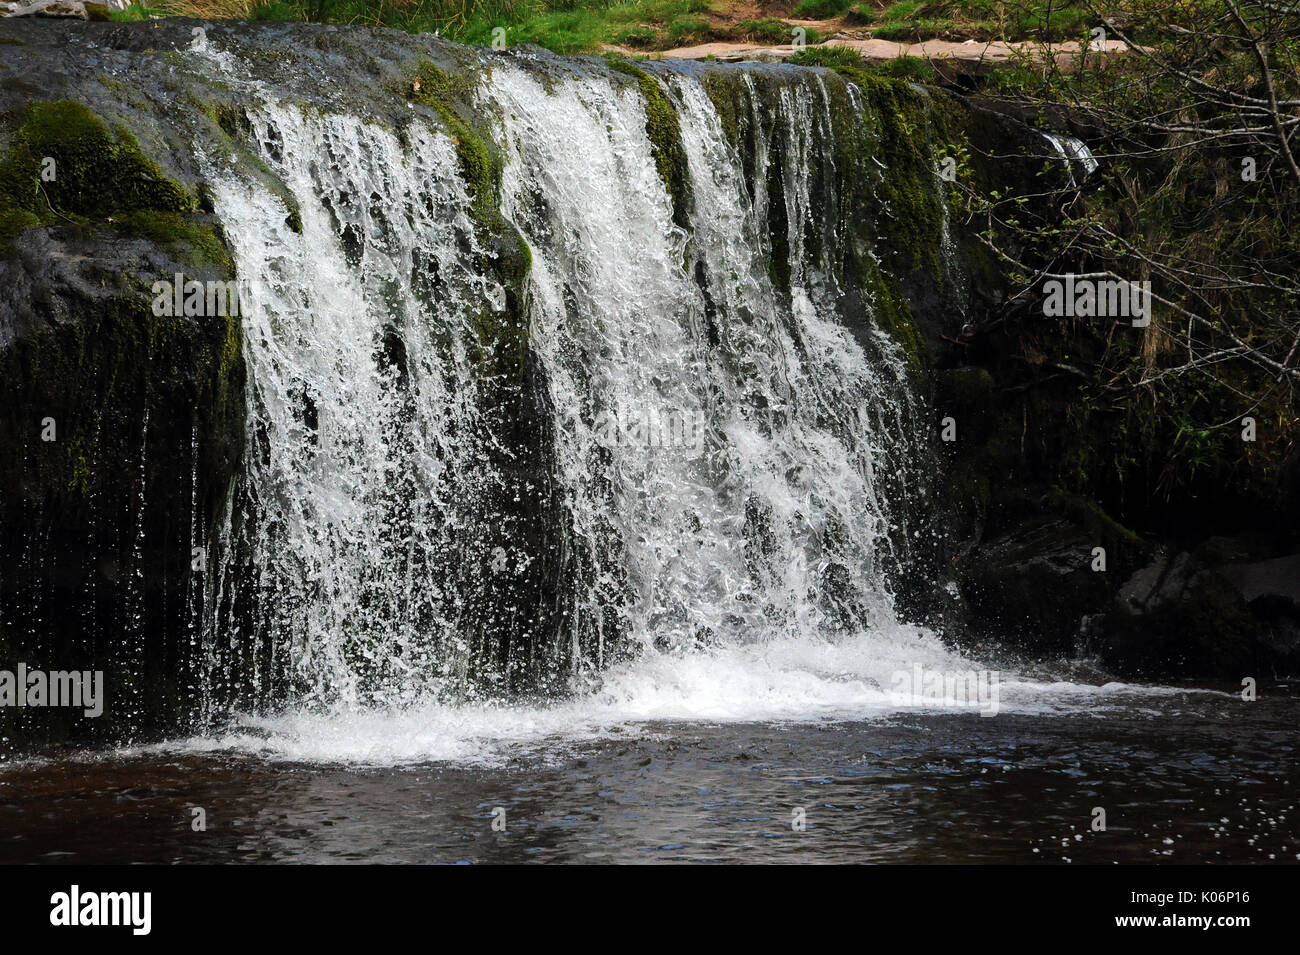 The upper of the two small waterfalls on the Afon Caerfanell near its confluence with the Nant Bwrefwr. - Stock Image